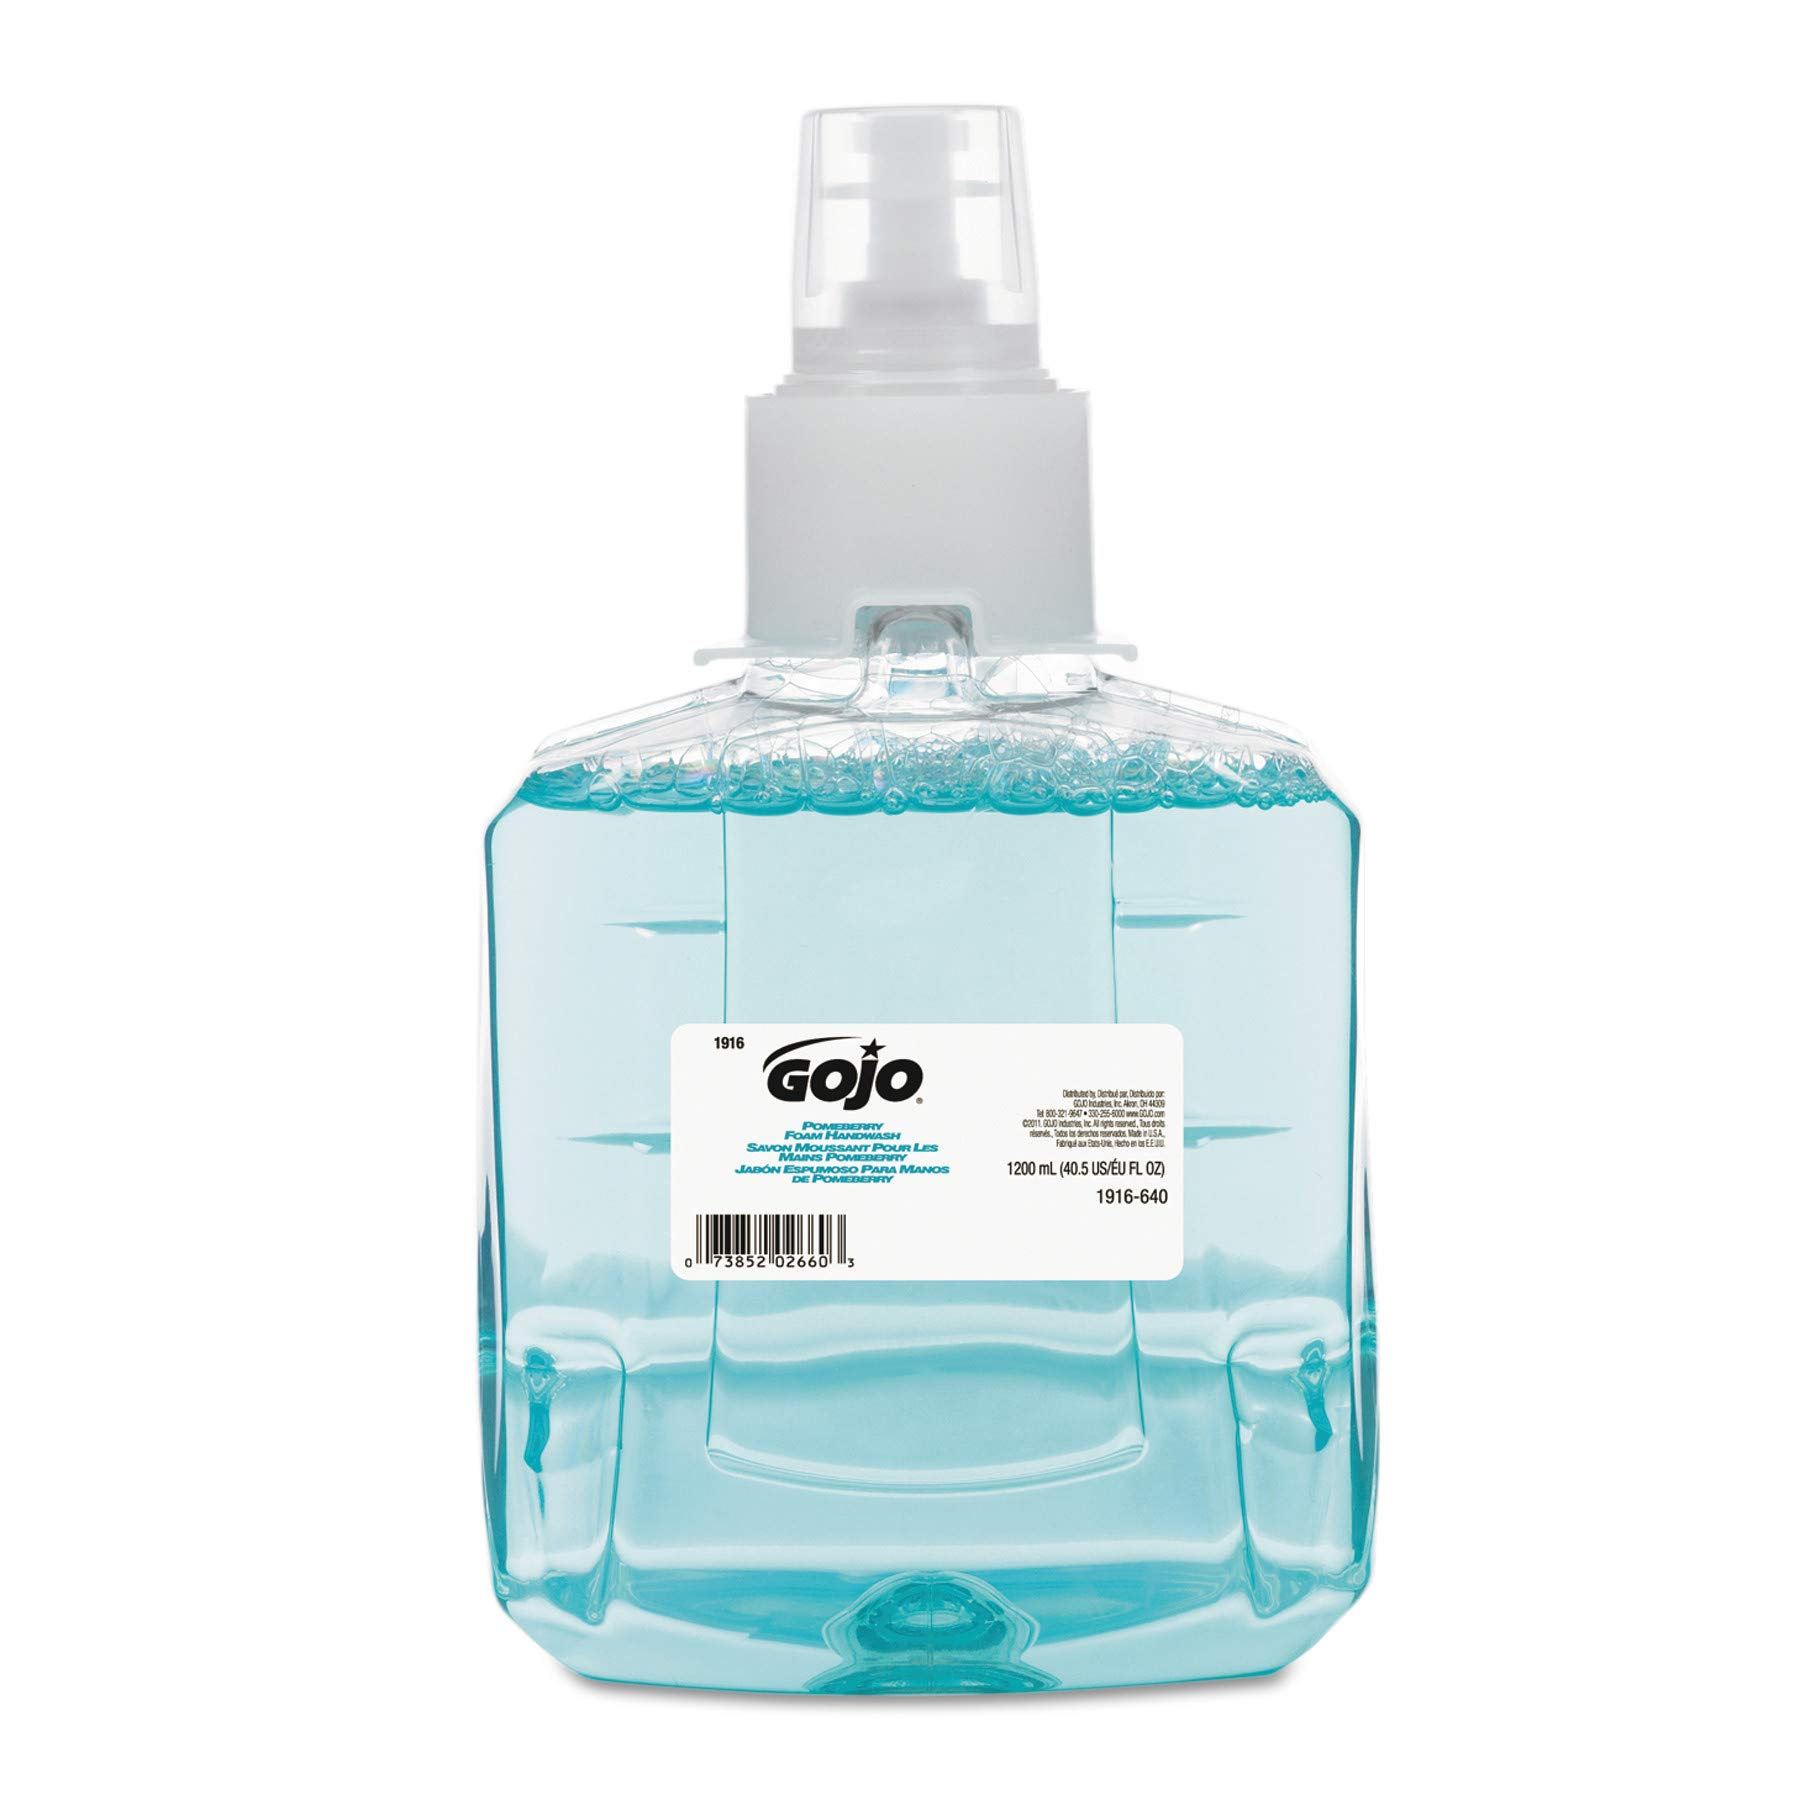 GOJO 191602CT Pomeberry Foam Handwash Refill, Pomegranate, 1200mL Refill (Case of 2) by Gojo